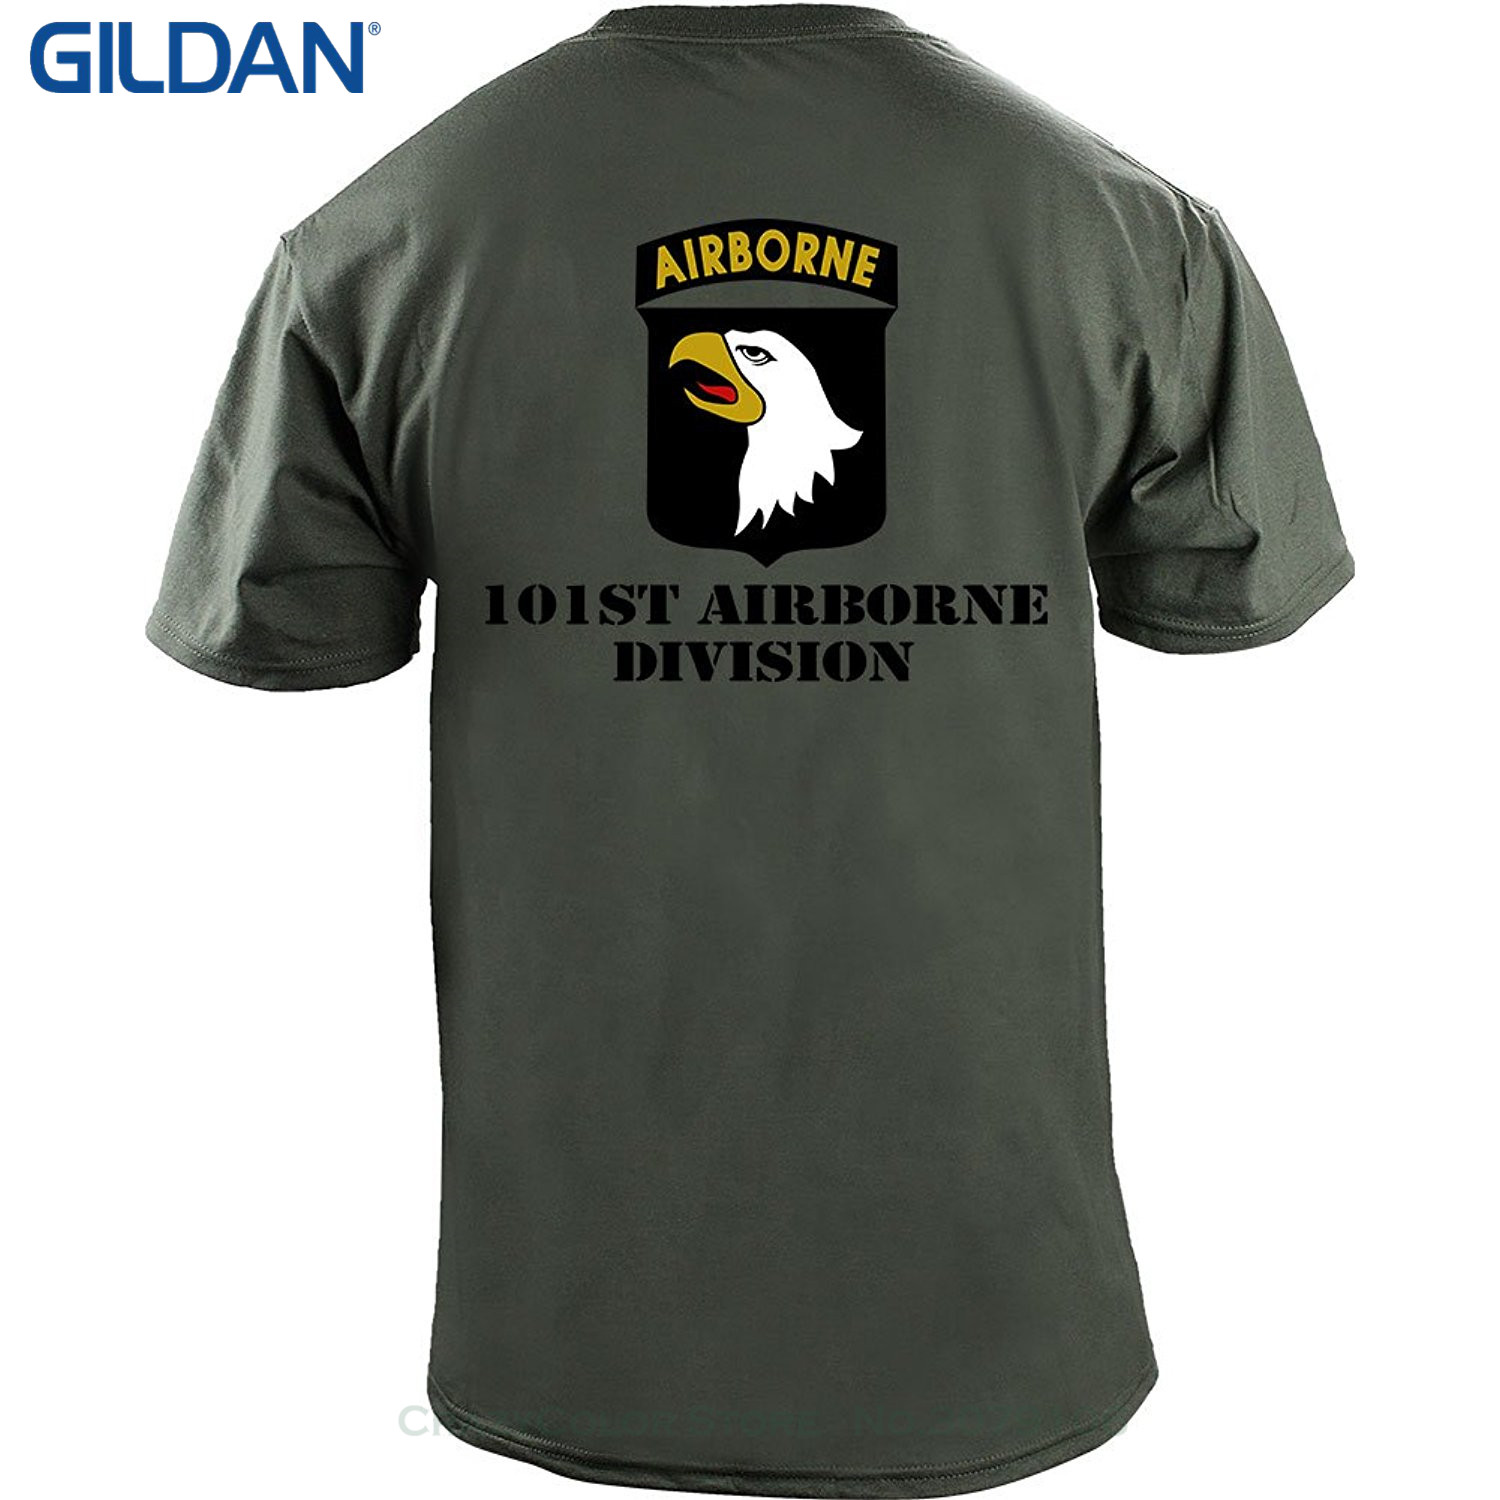 Short Sleeve Funny Design Army 101st Airborne Division Full Color Veteran T-shirt